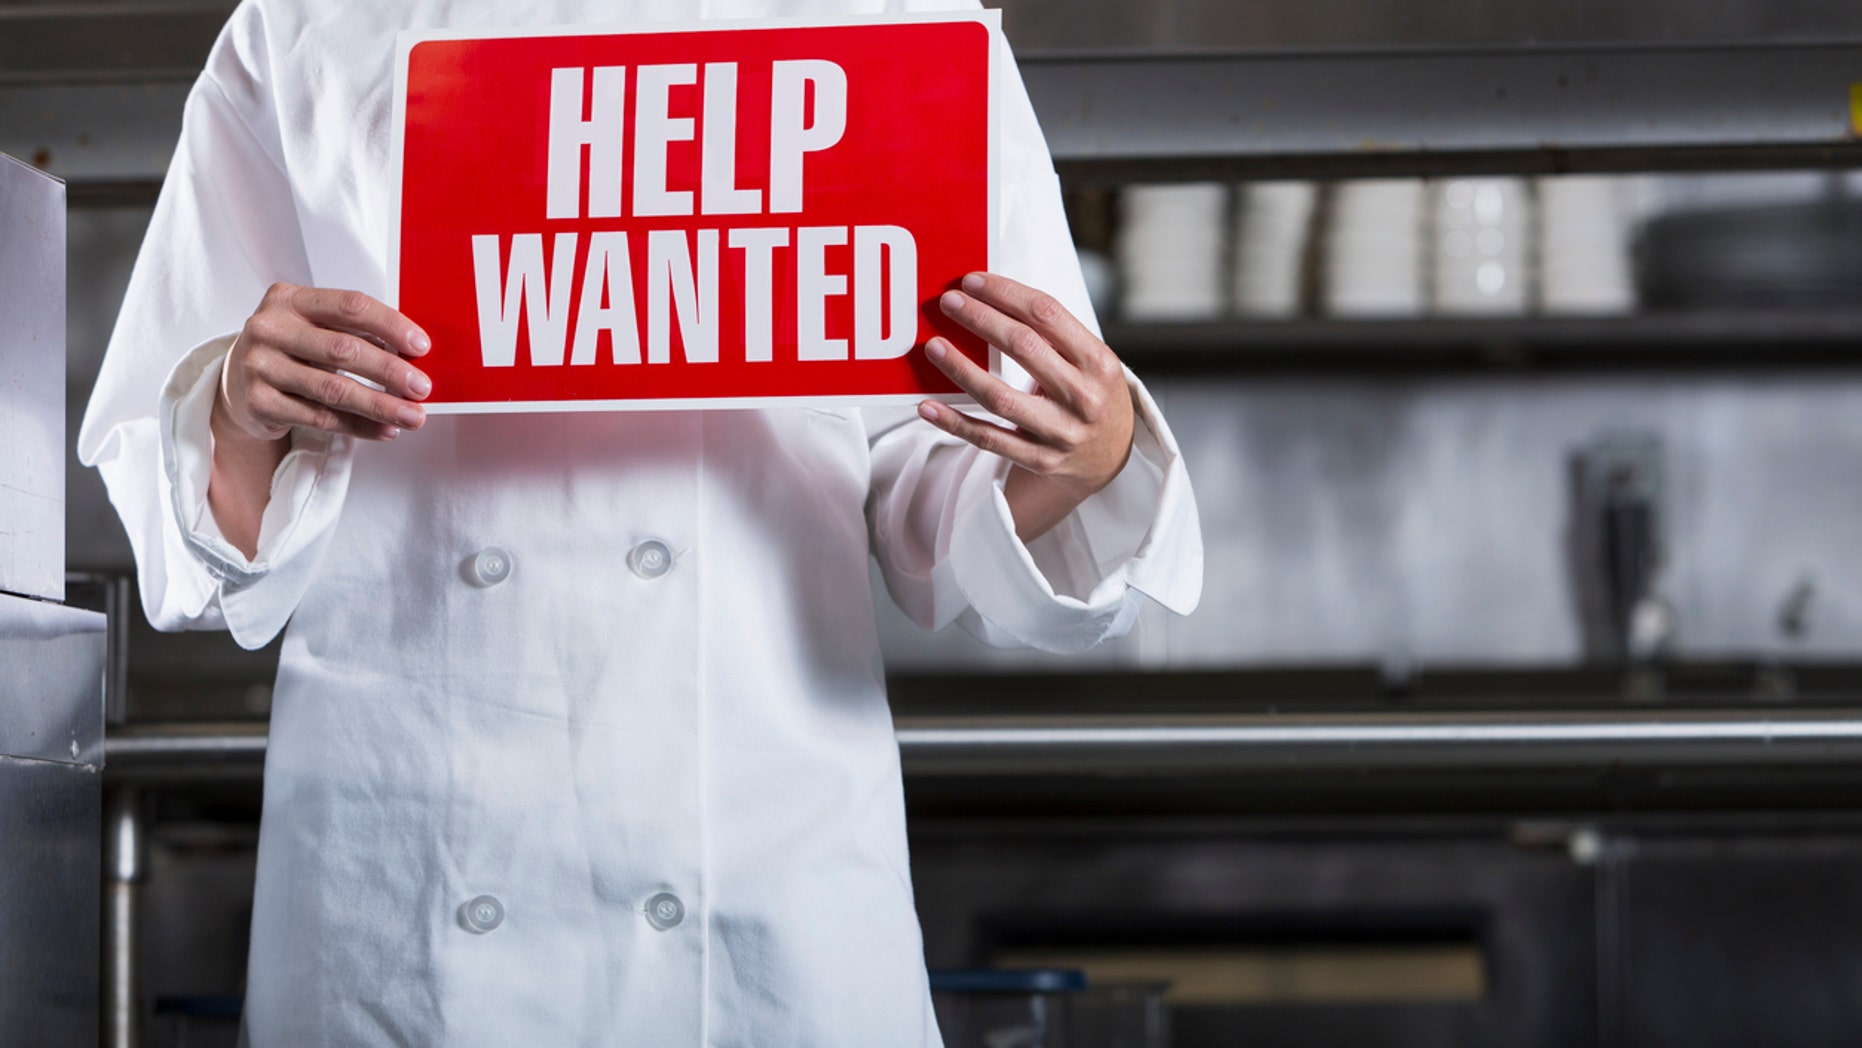 A southern restaurant in Texas is giving back to his community by hiring those in need.